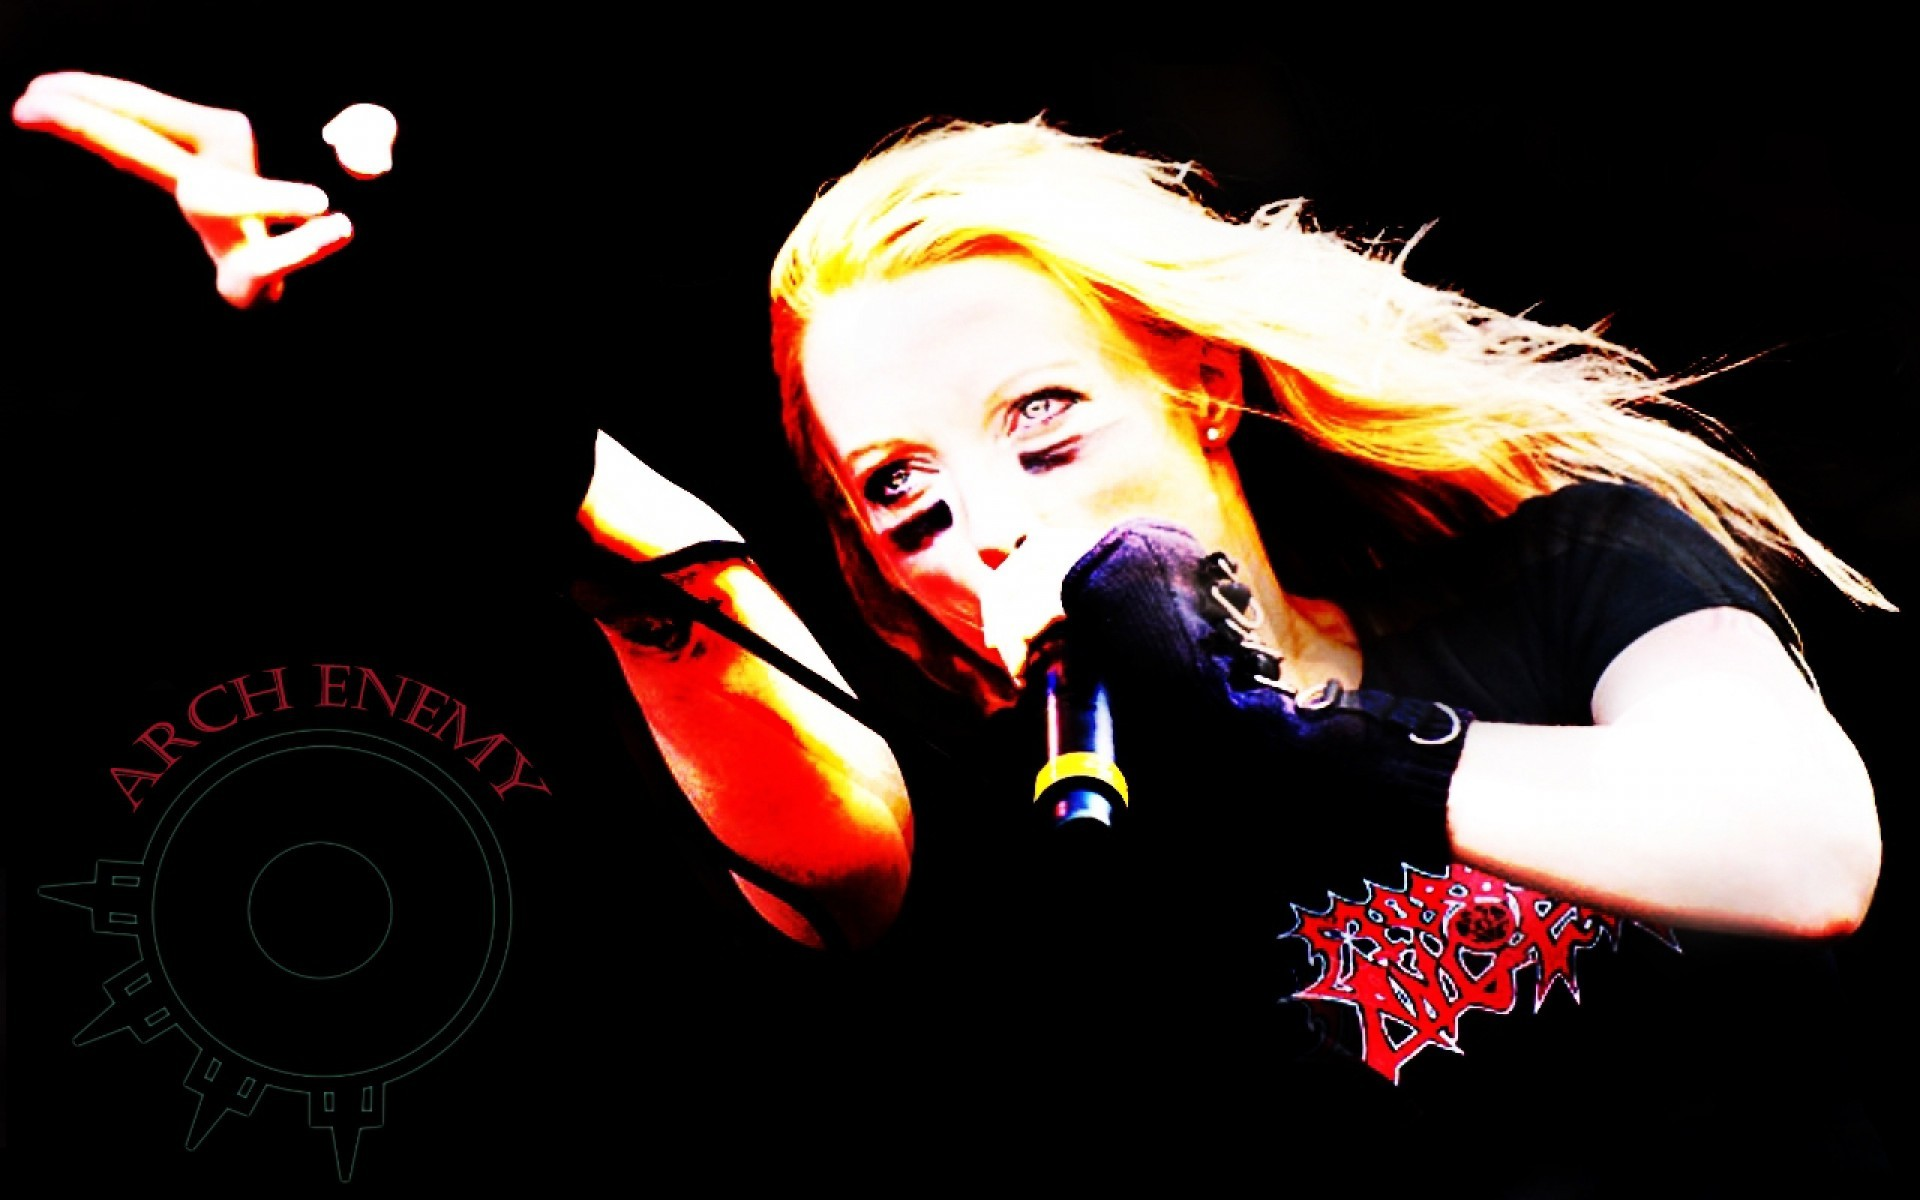 1920x1200 Music - Arch Enemy Wallpaper